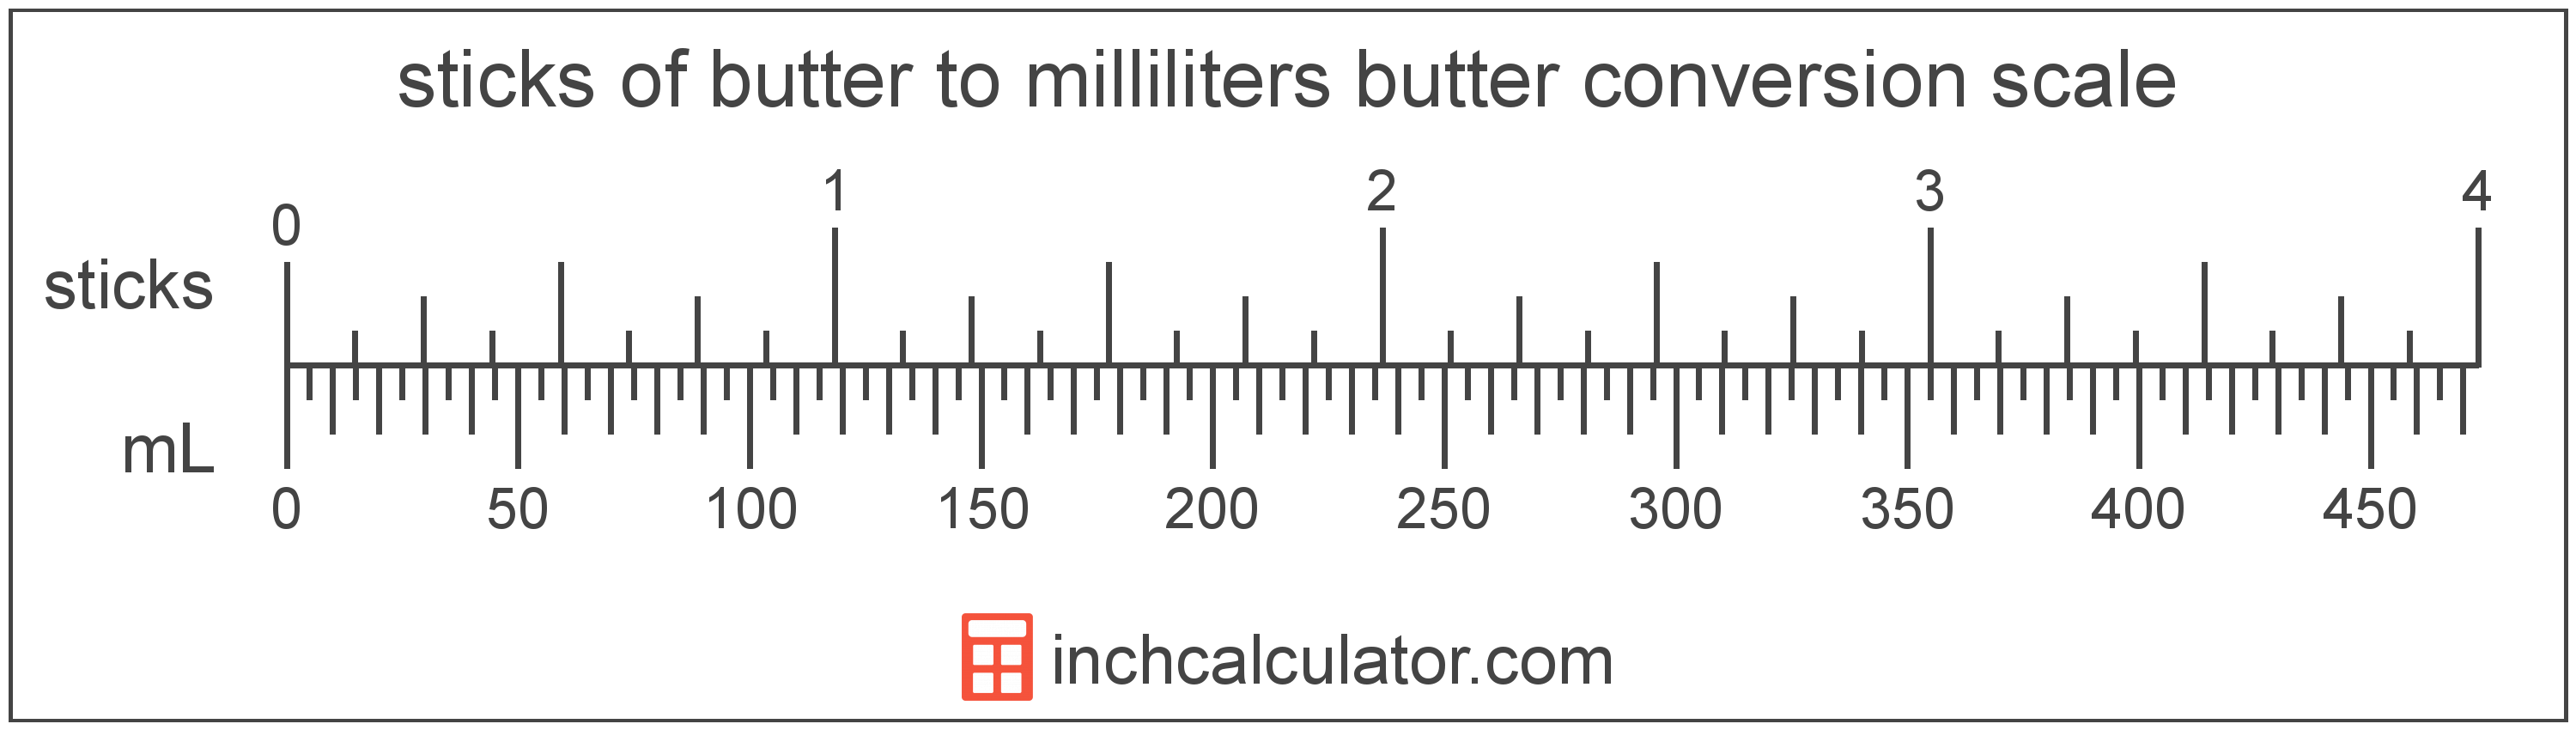 conversion scale showing milliliters and equivalent sticks of butter butter values